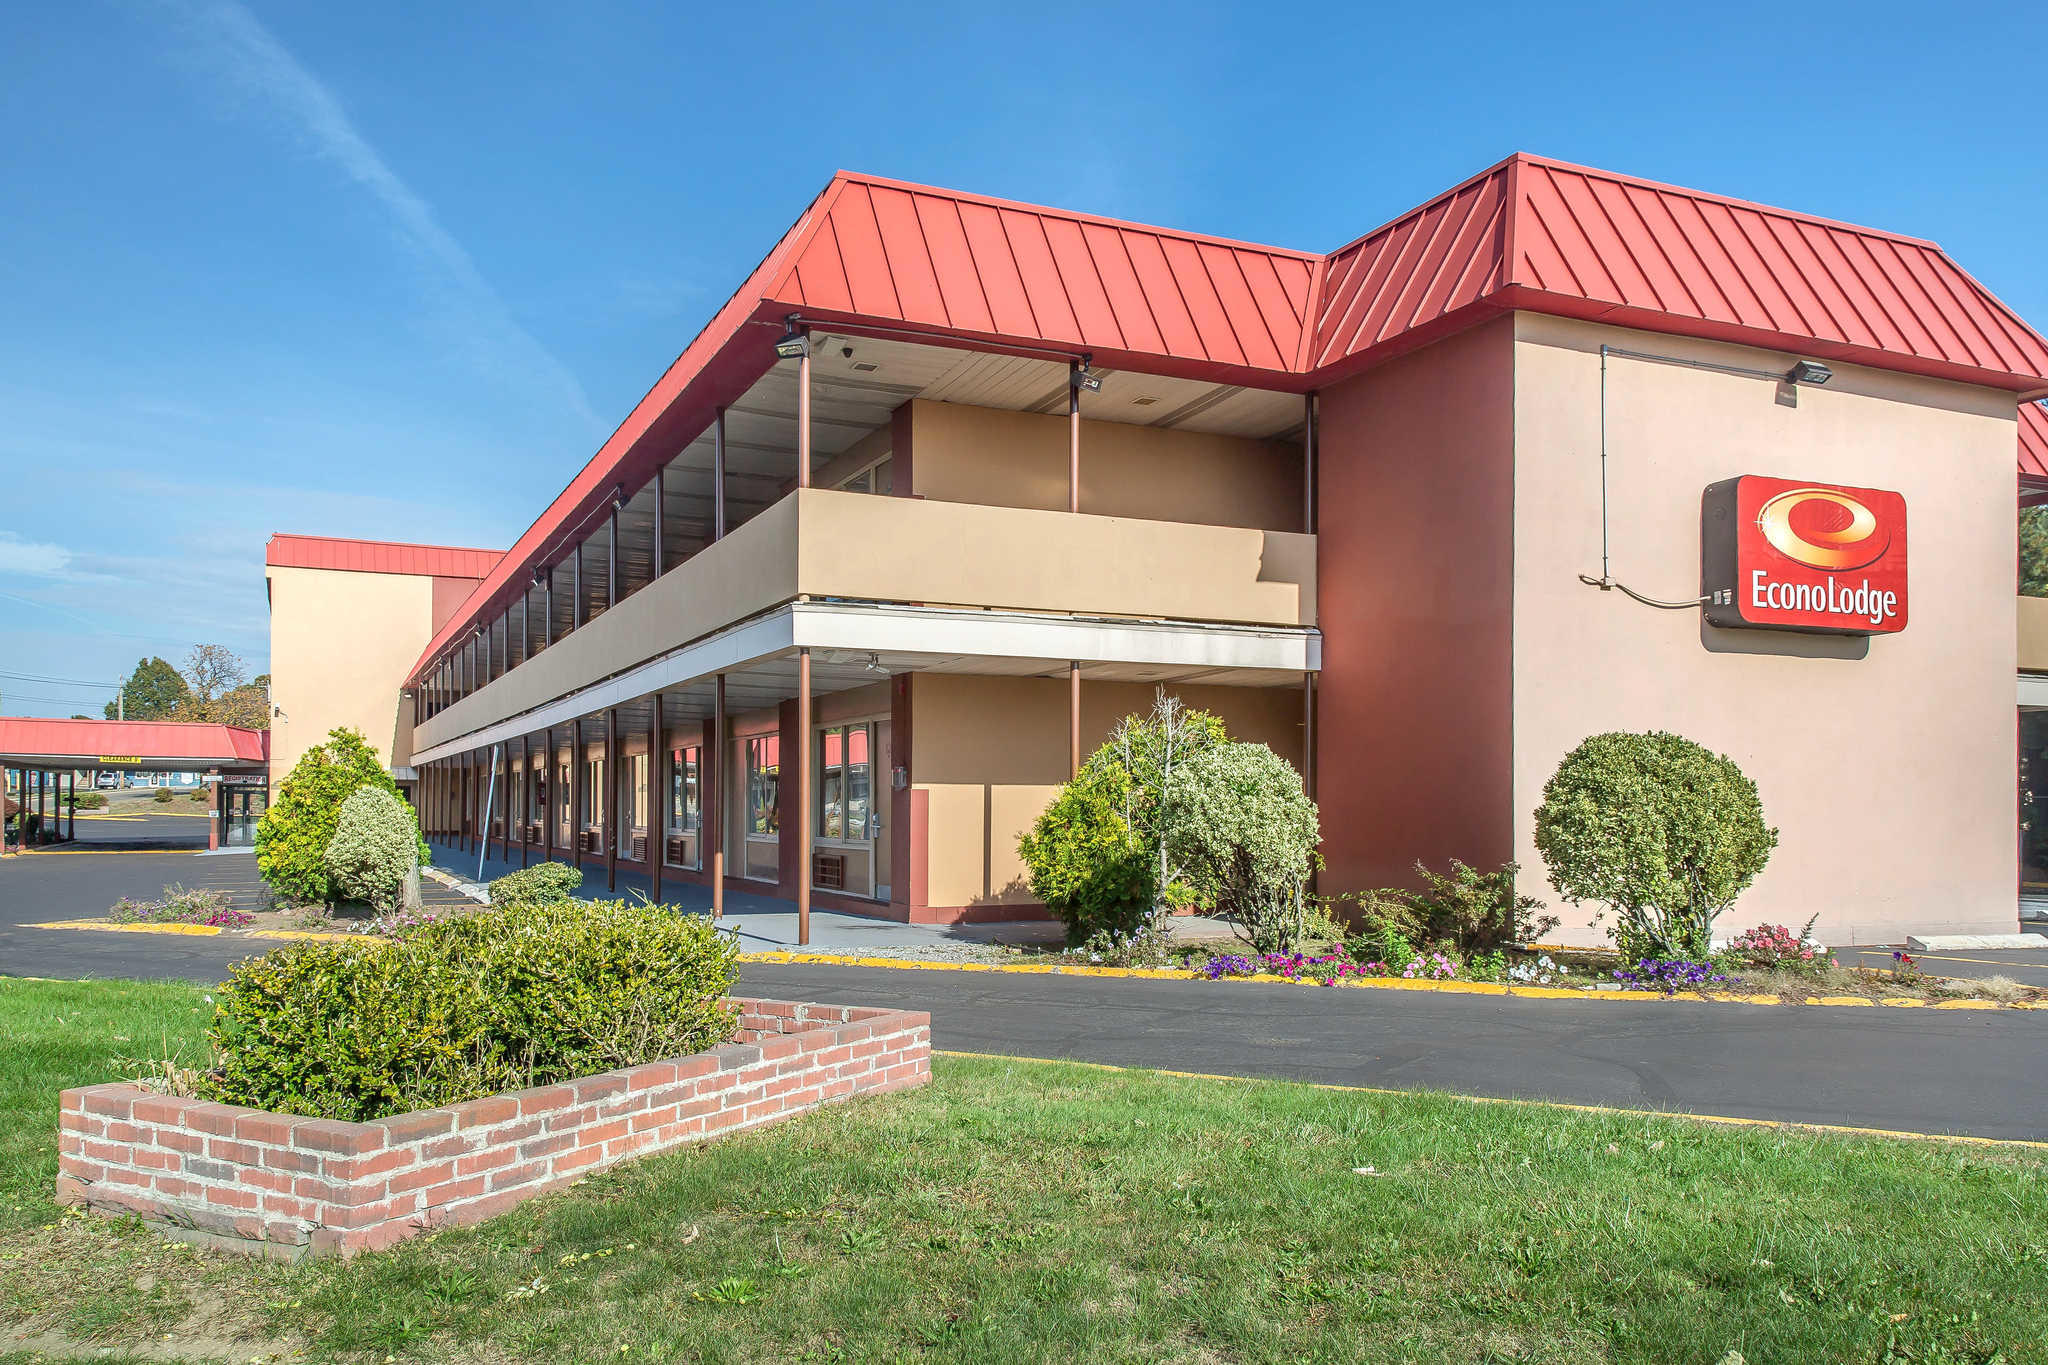 Cheap Motels In West Haven Ct